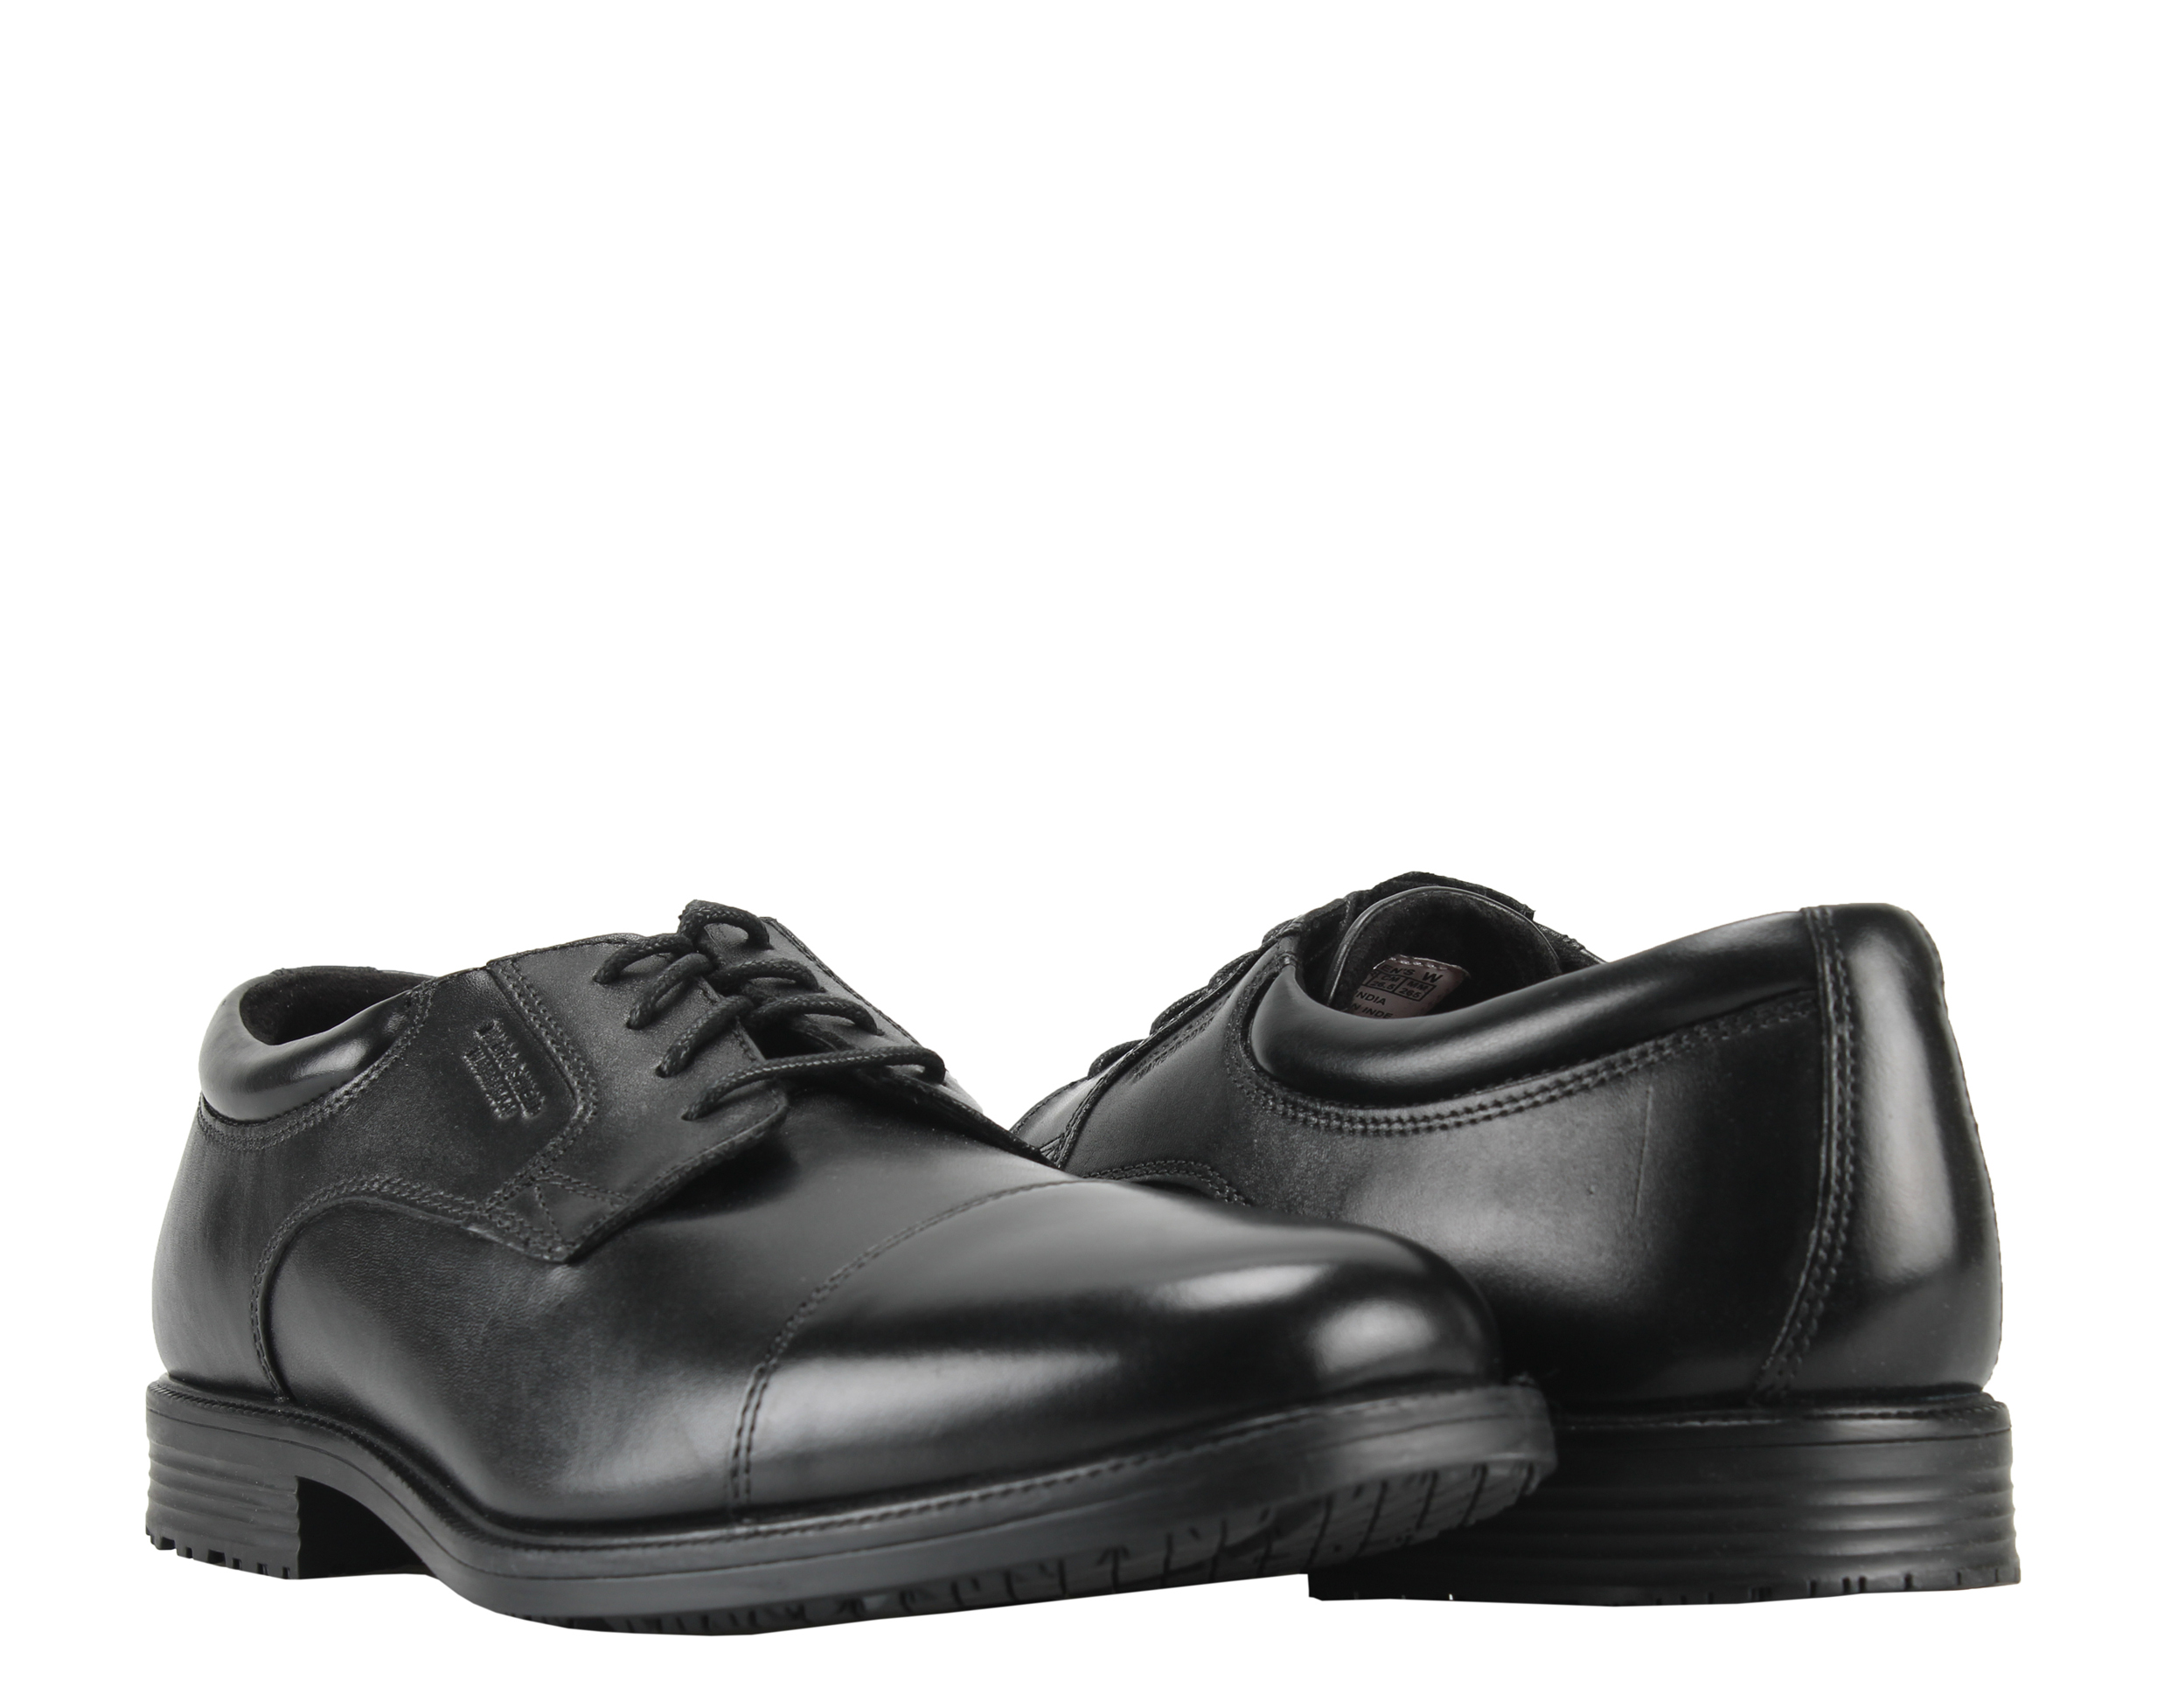 Rockport Essential Details Waterproof Cap Toe Black Men's Dress Shoes V73839 by